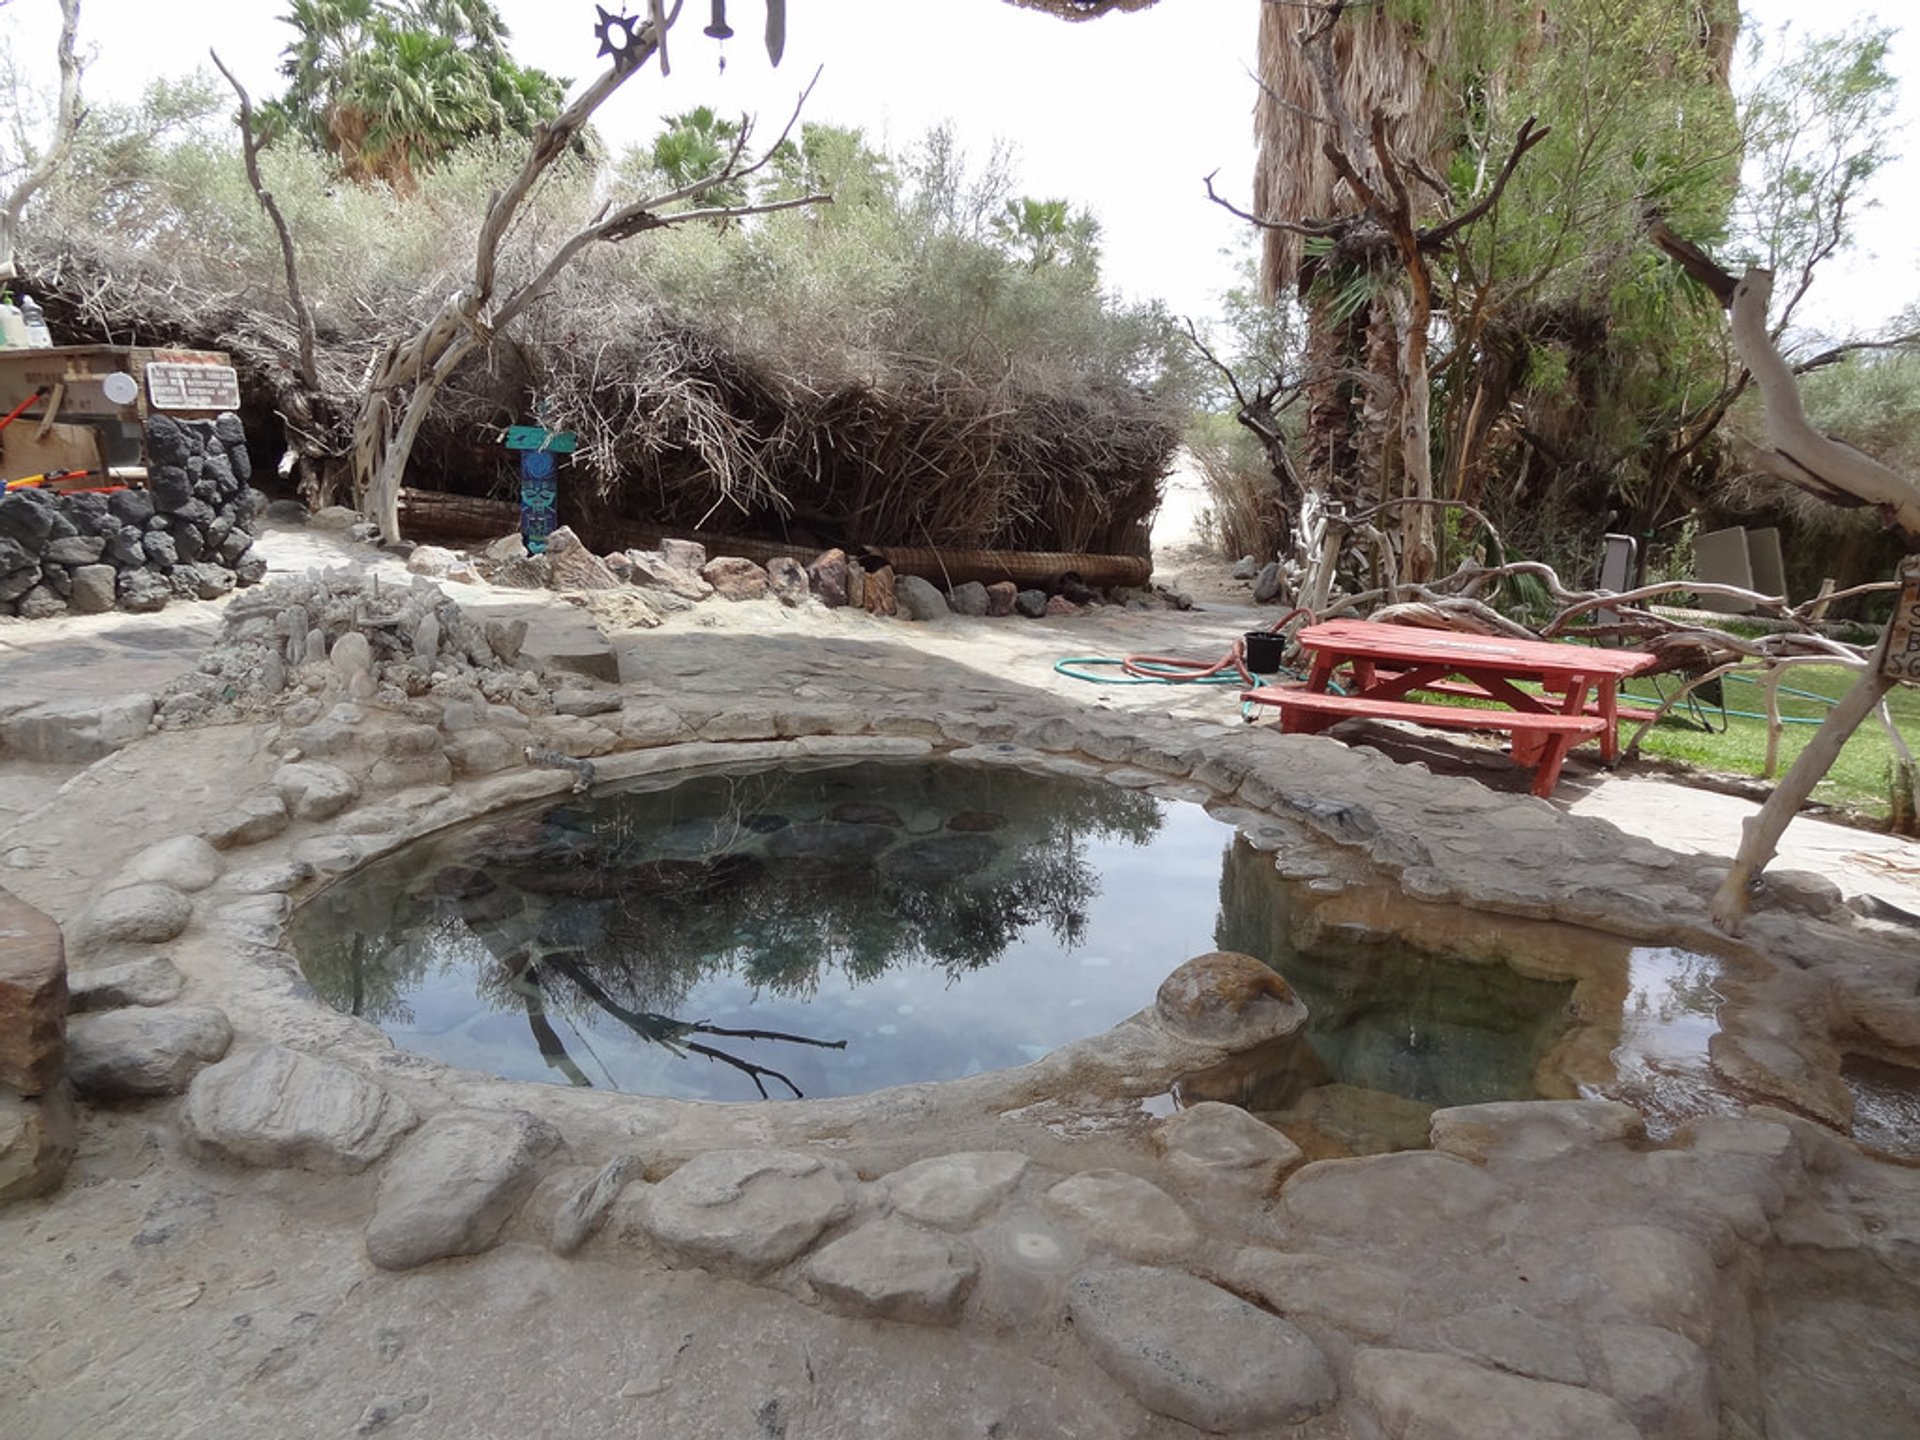 Best time for Saline Valley Hot Springs in Death Valley